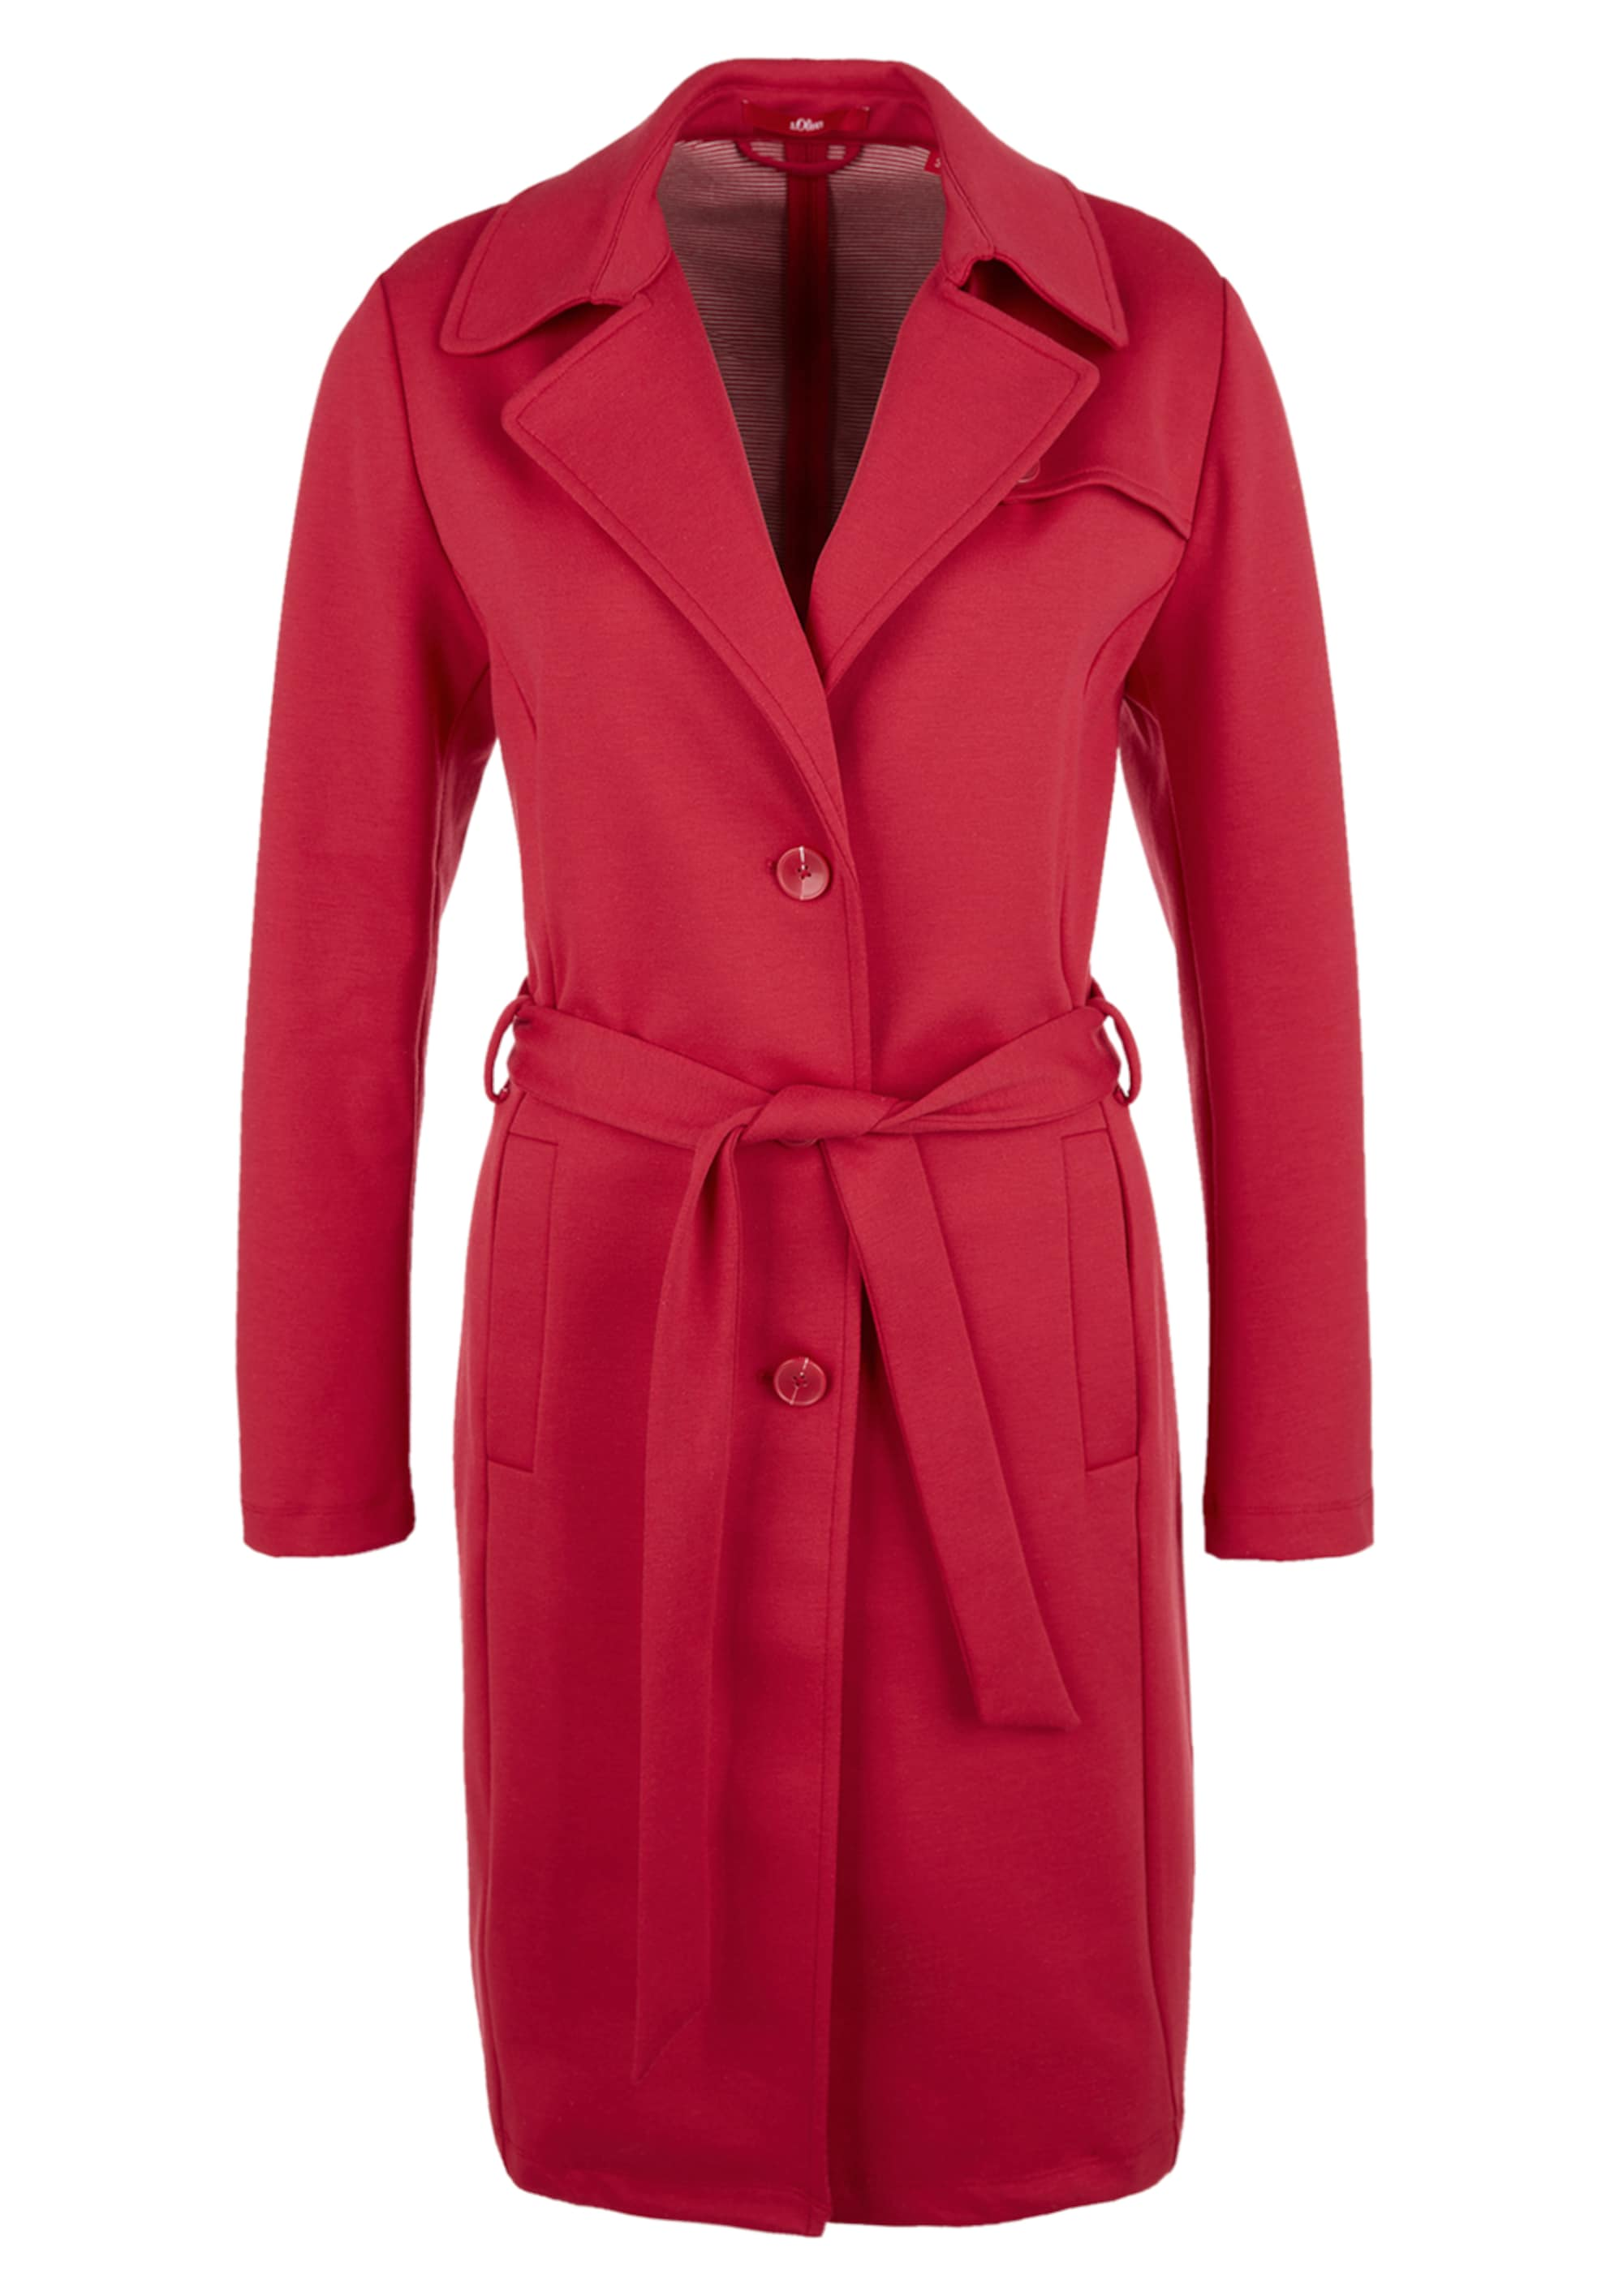 s.oliver red label - Double-Face-Mantel im Trenchcoat-Look